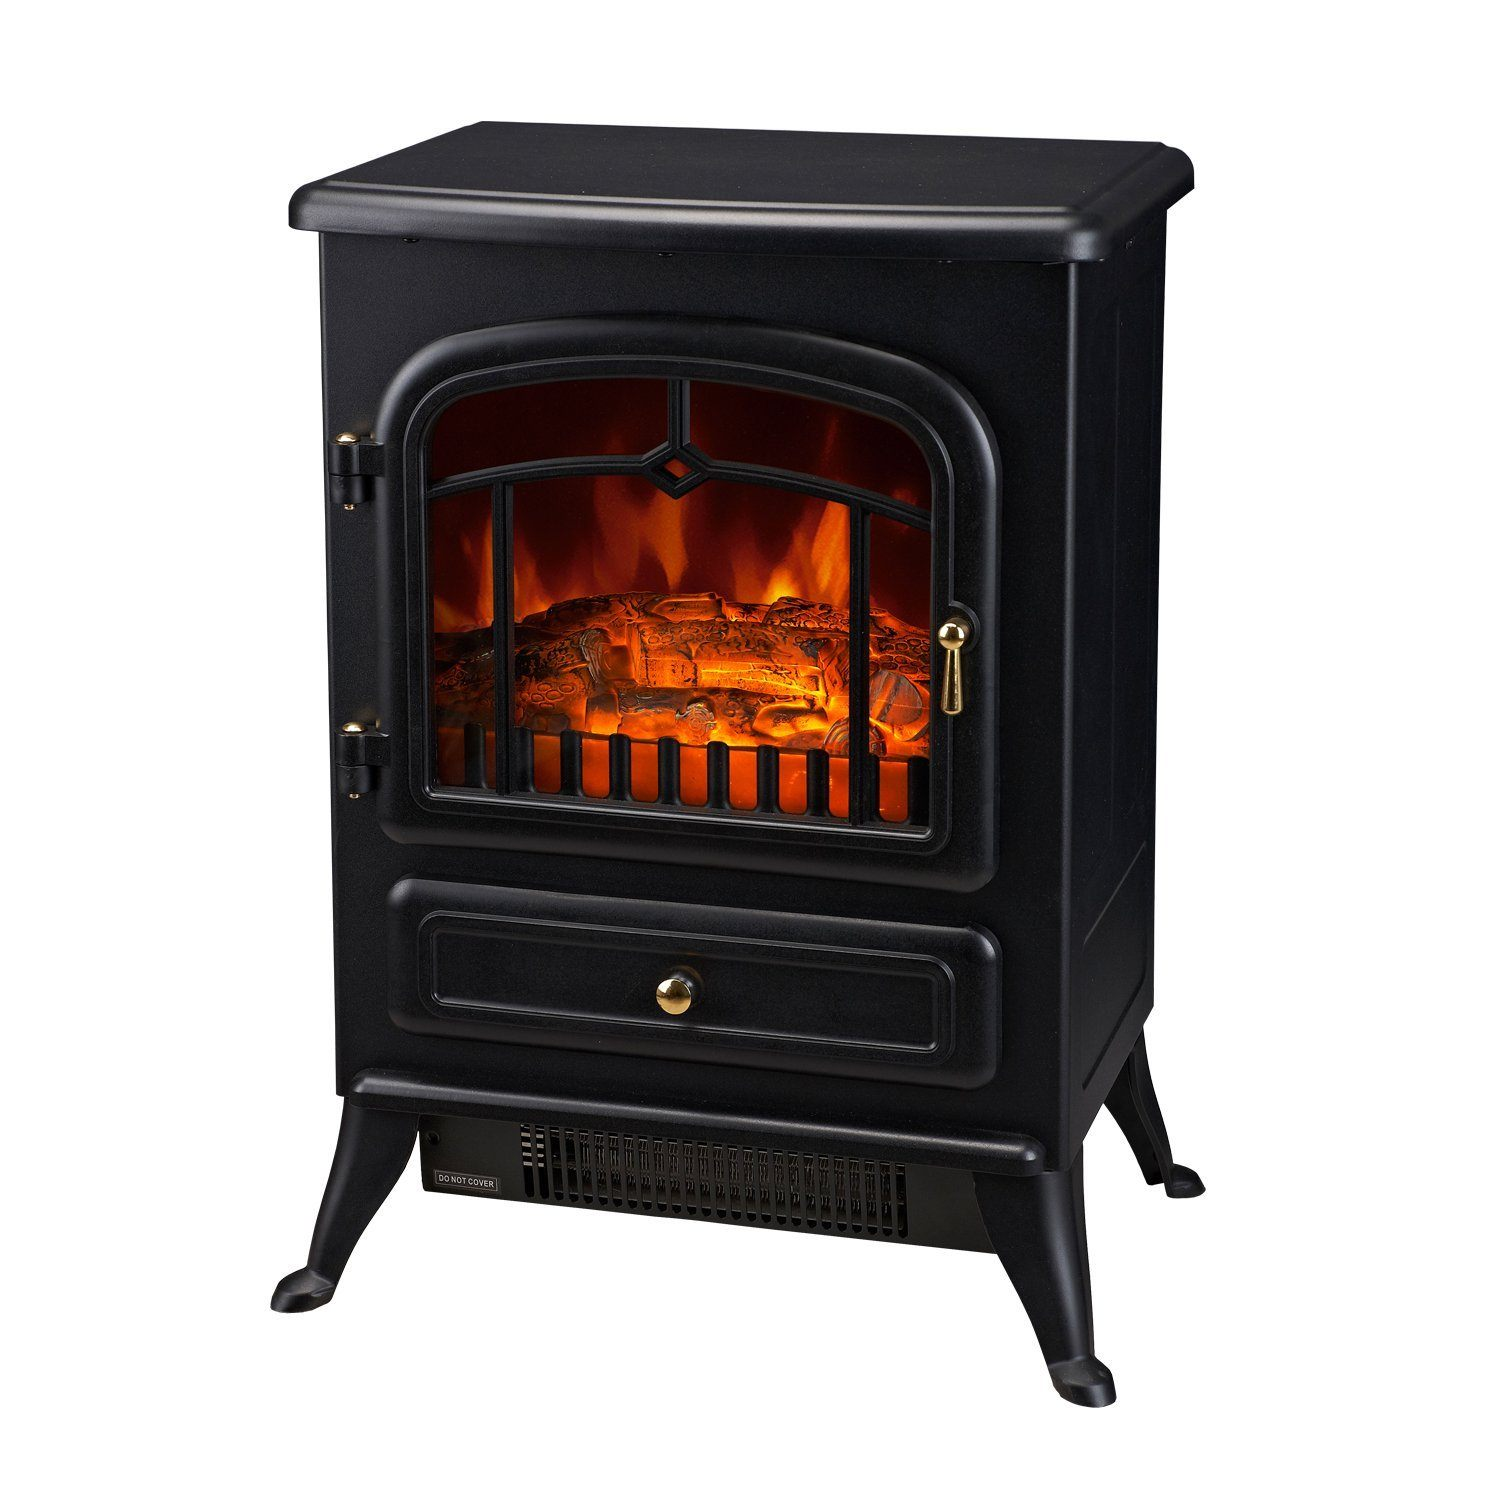 HomCom Electric Wood Stove Fireplace Heater